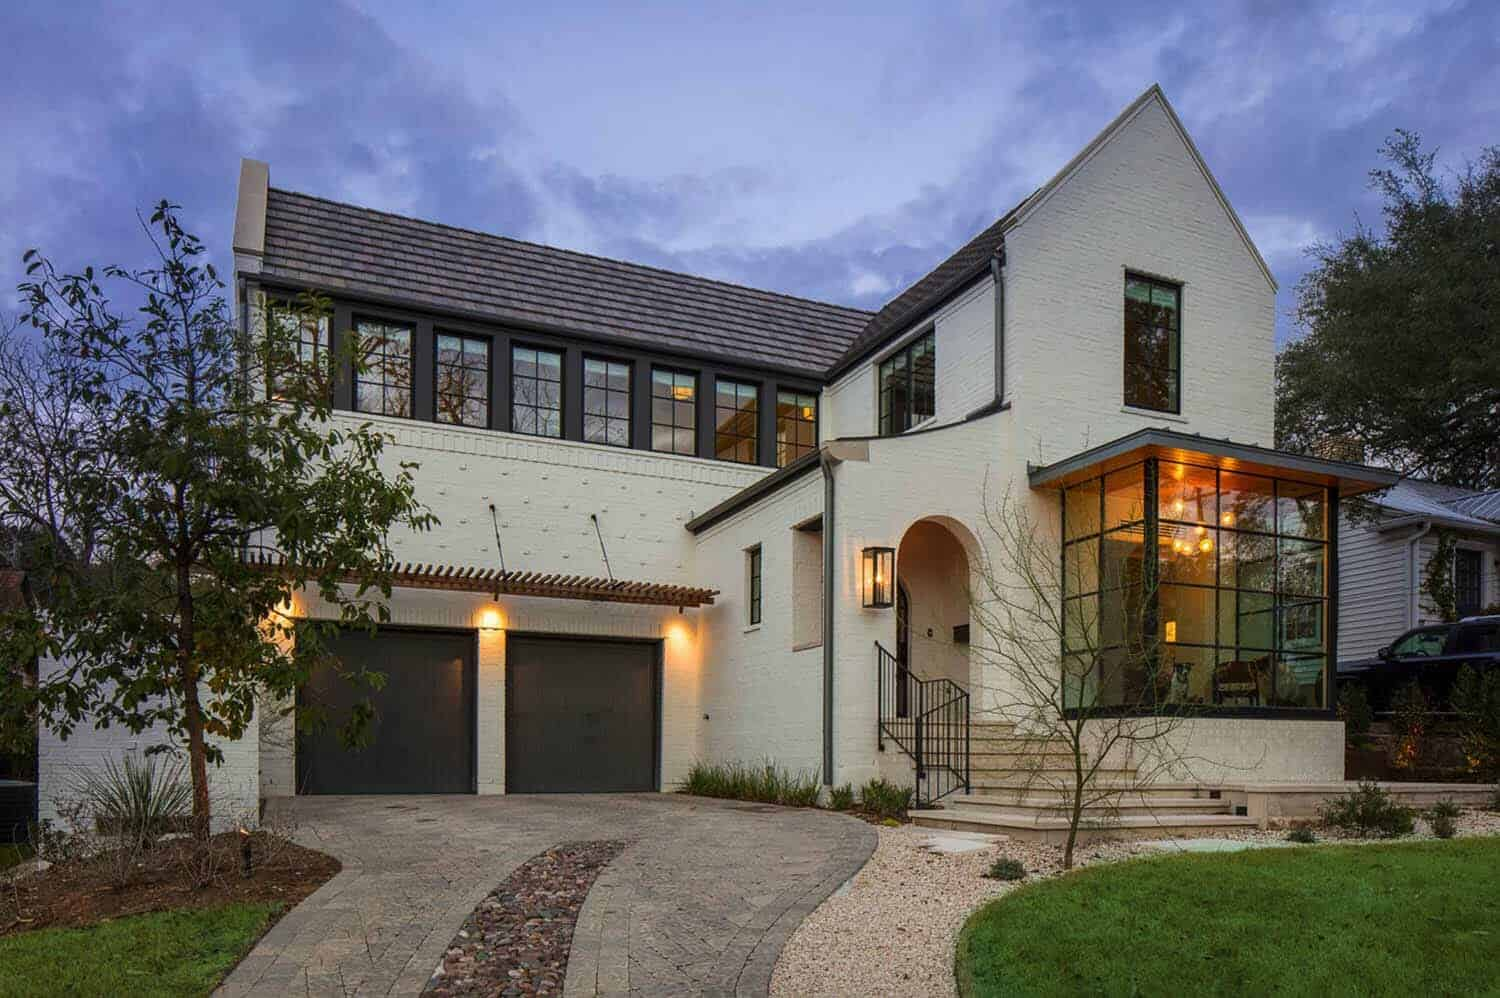 Texas dream home offers striking blend of modern and traditional design